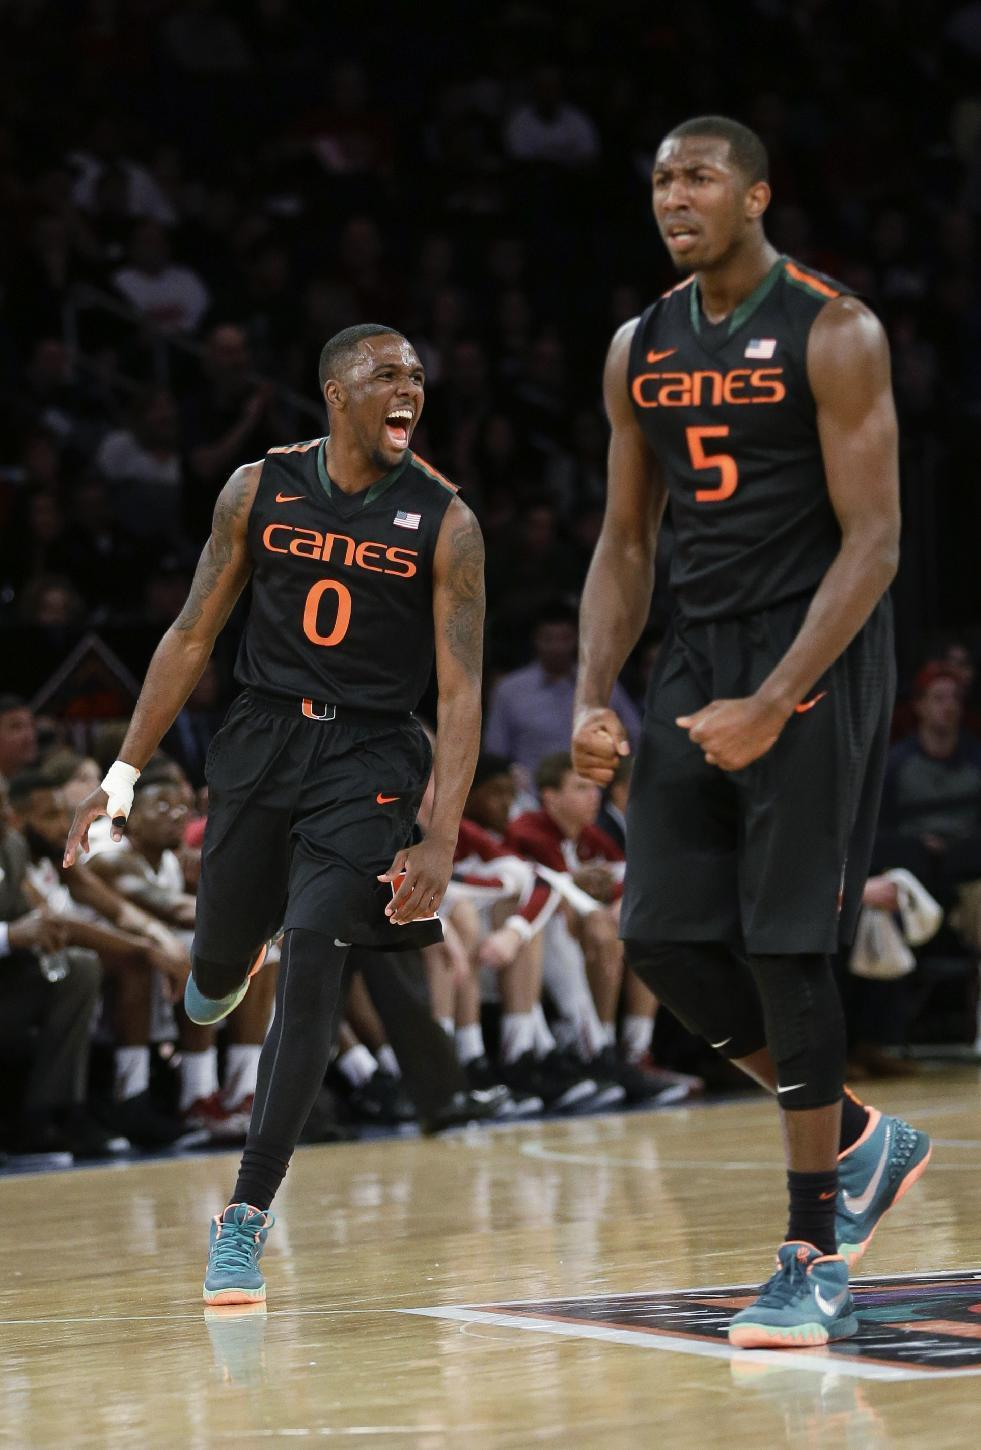 Miami, Stanford meet in NIT final matchup of banged-up teams